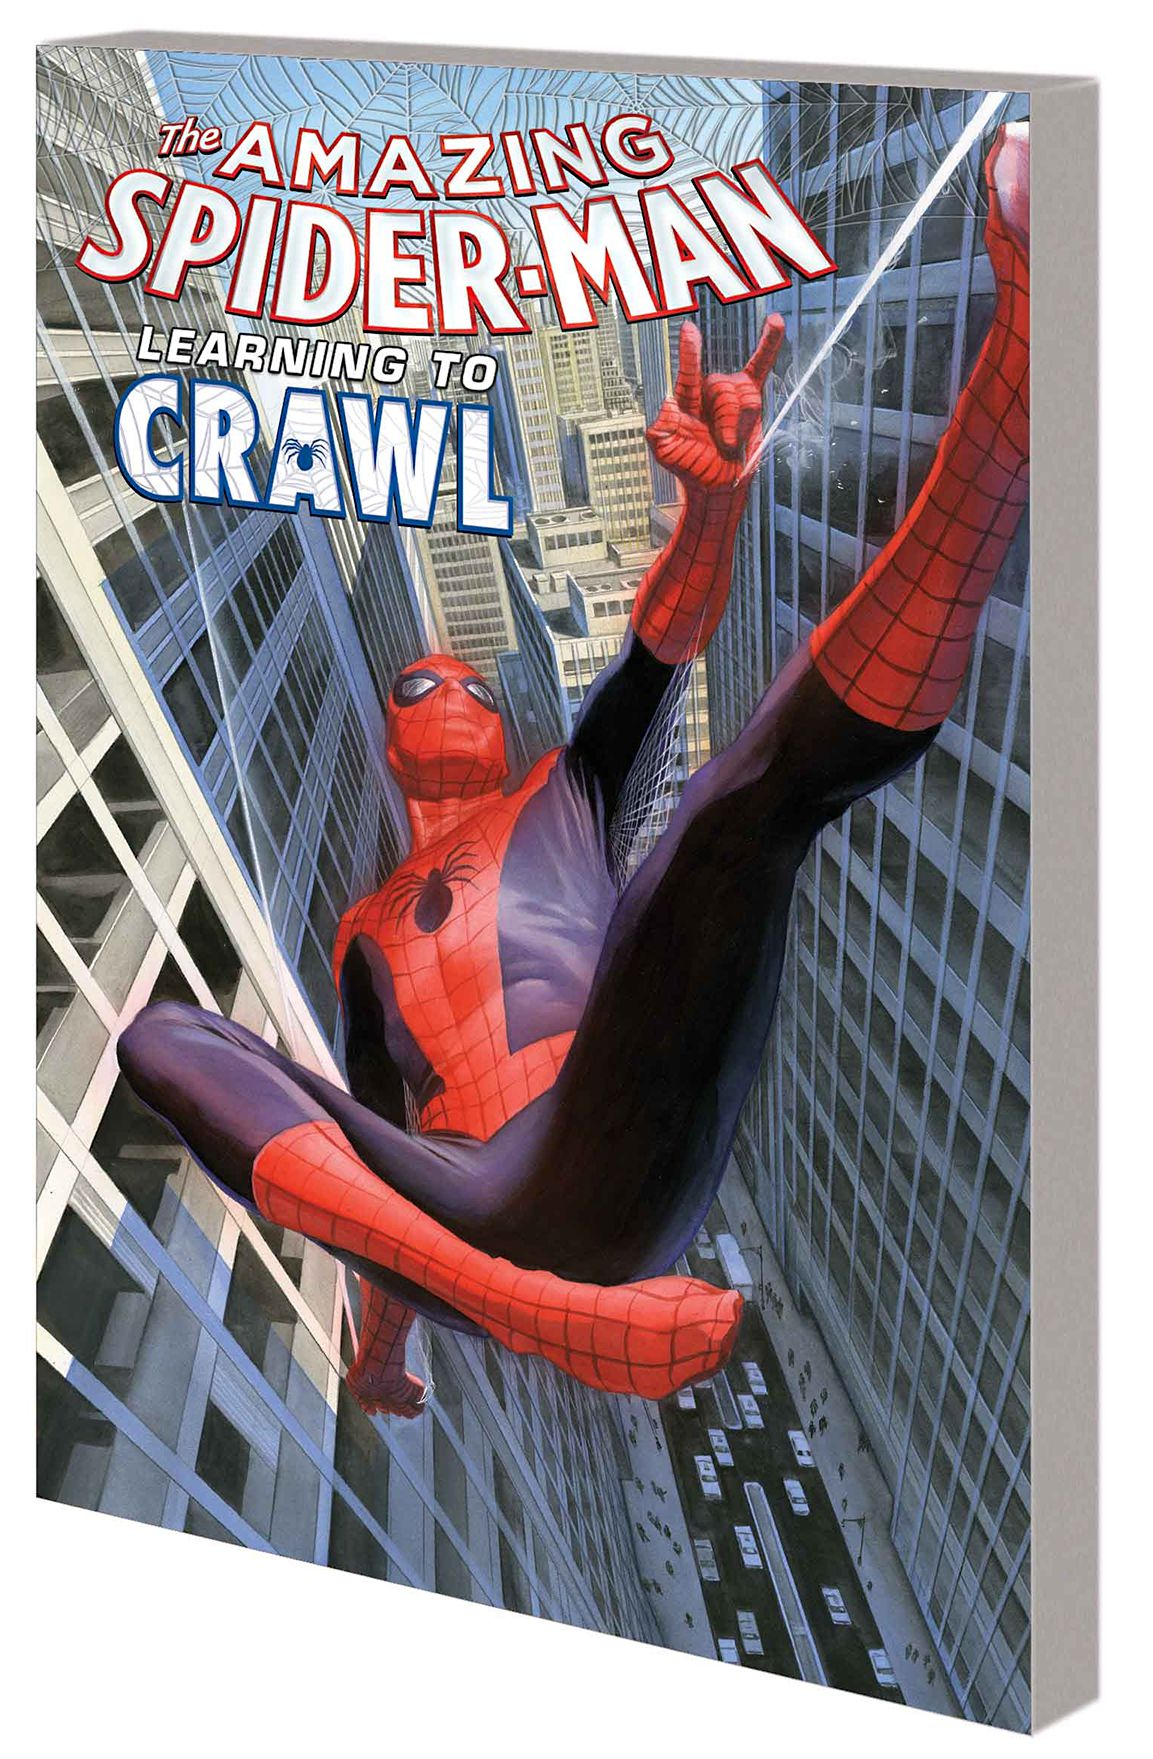 AMAZING SPIDER MAN TP 01.1 LEARNING TO CRAWL